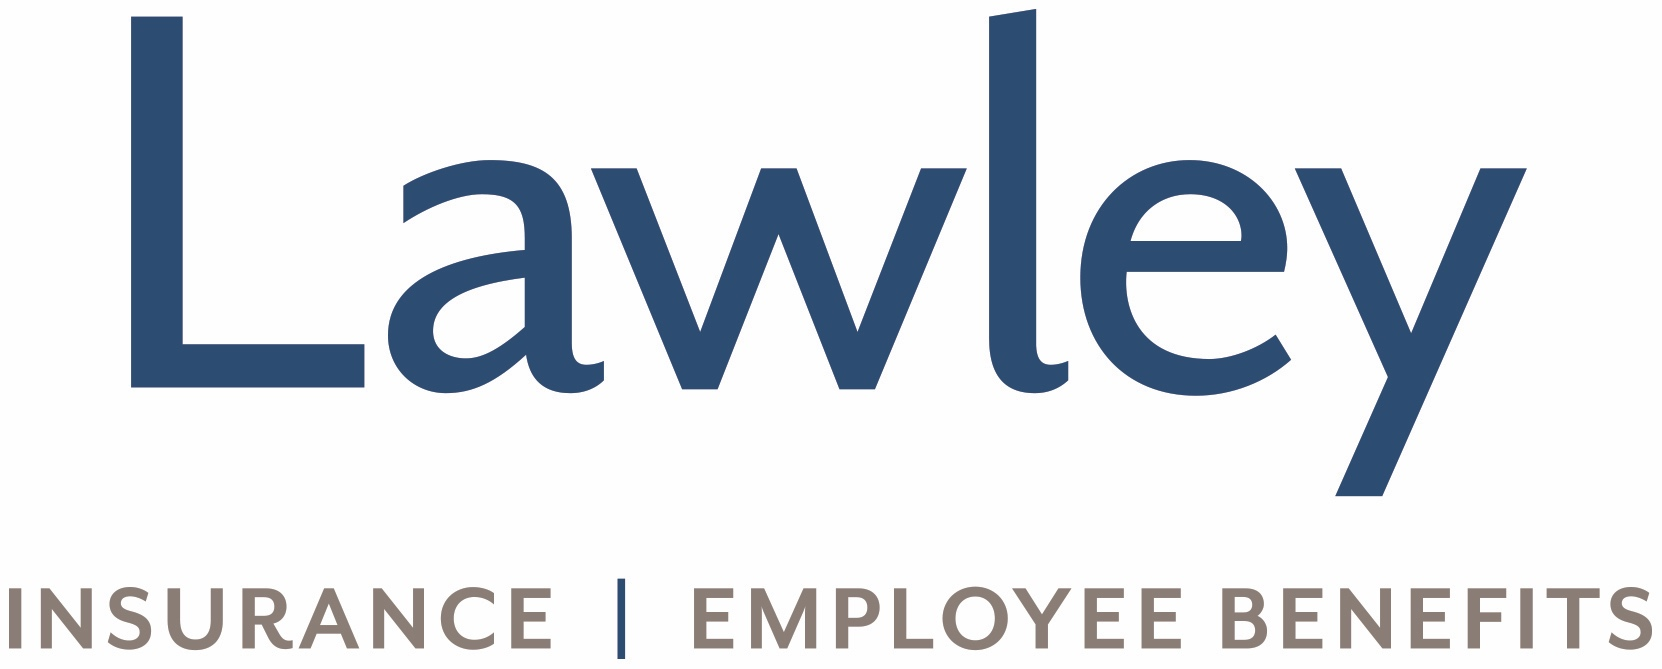 Lawley_logo and tag_color.jpg